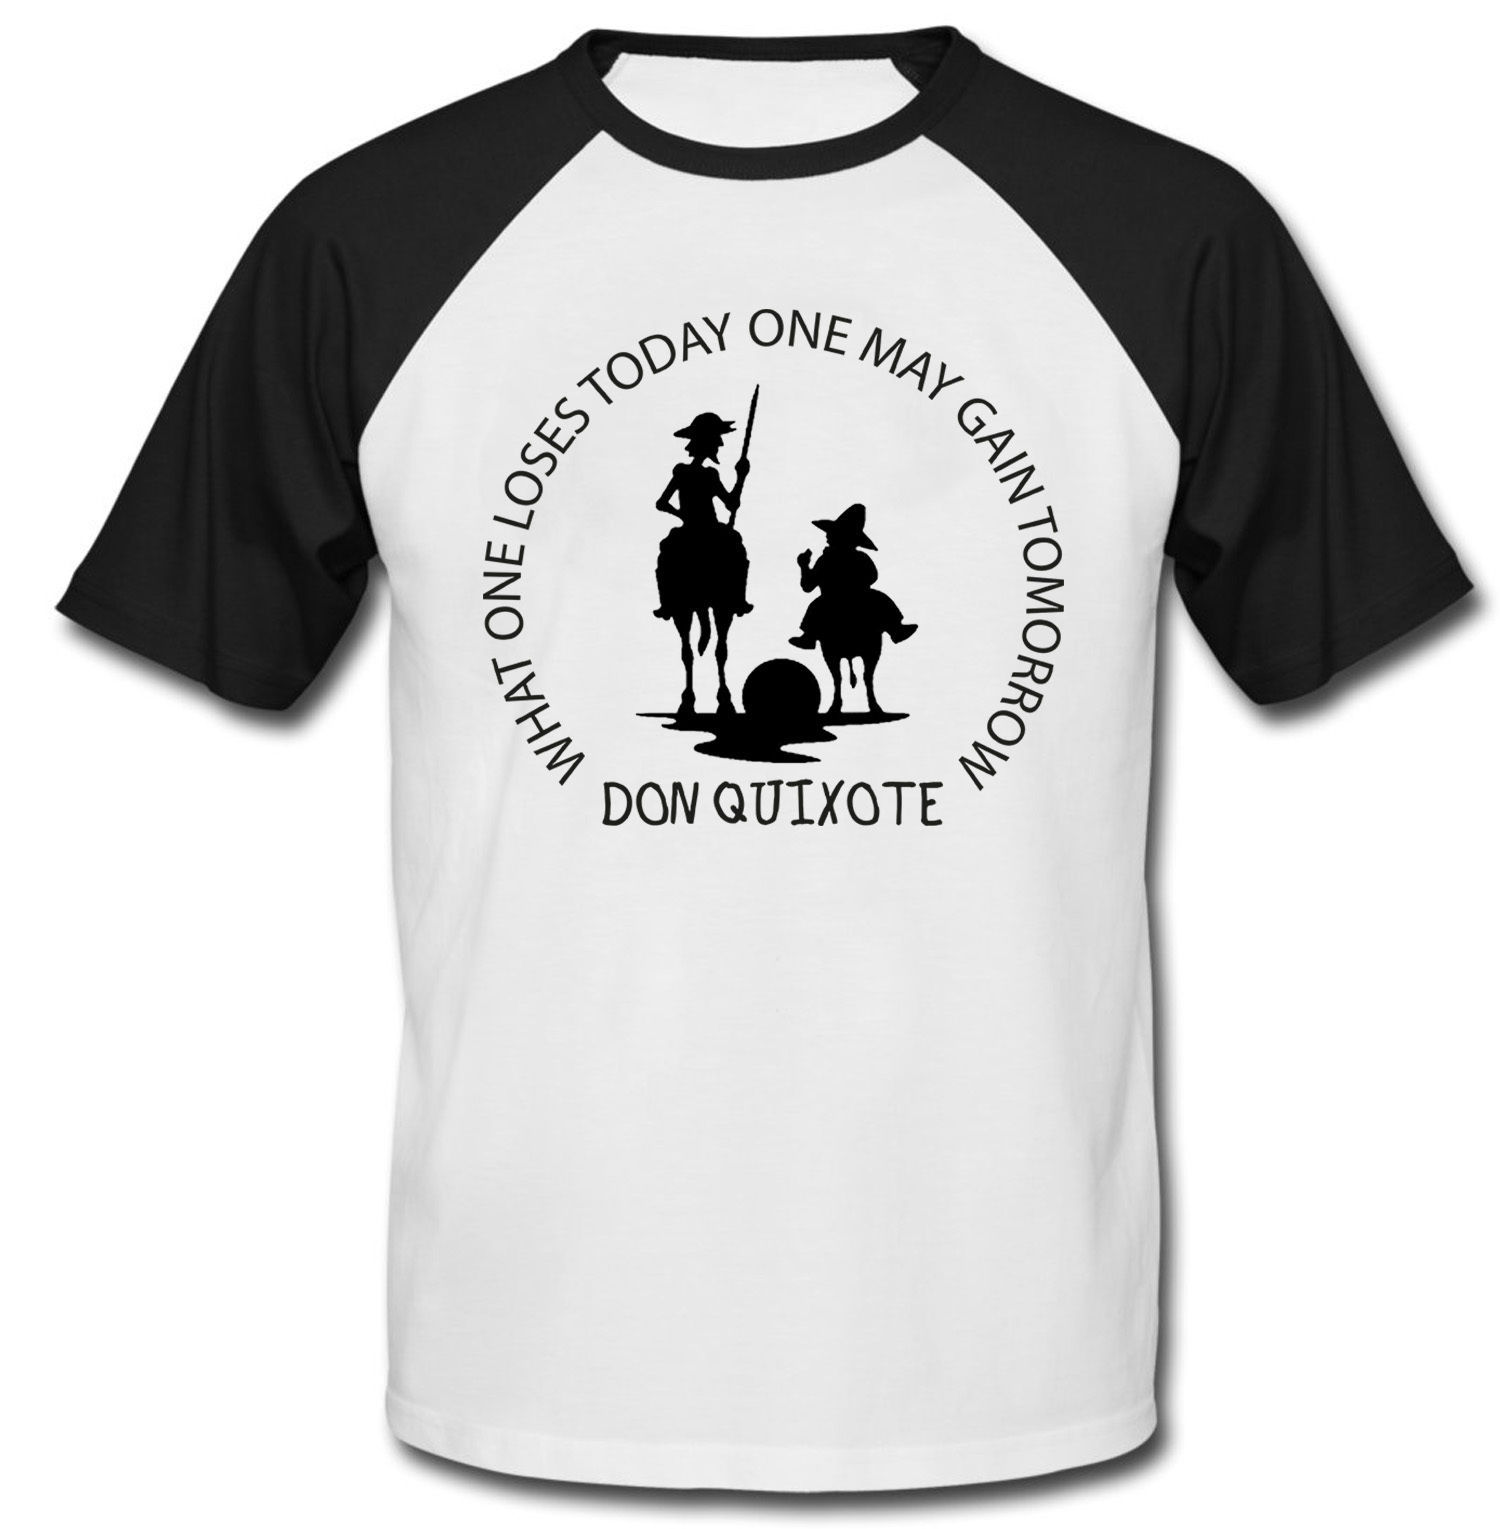 DON QUIXOTE MAY GAIN TOMORROW - NEW COTTON BASEBALL TSHIRT